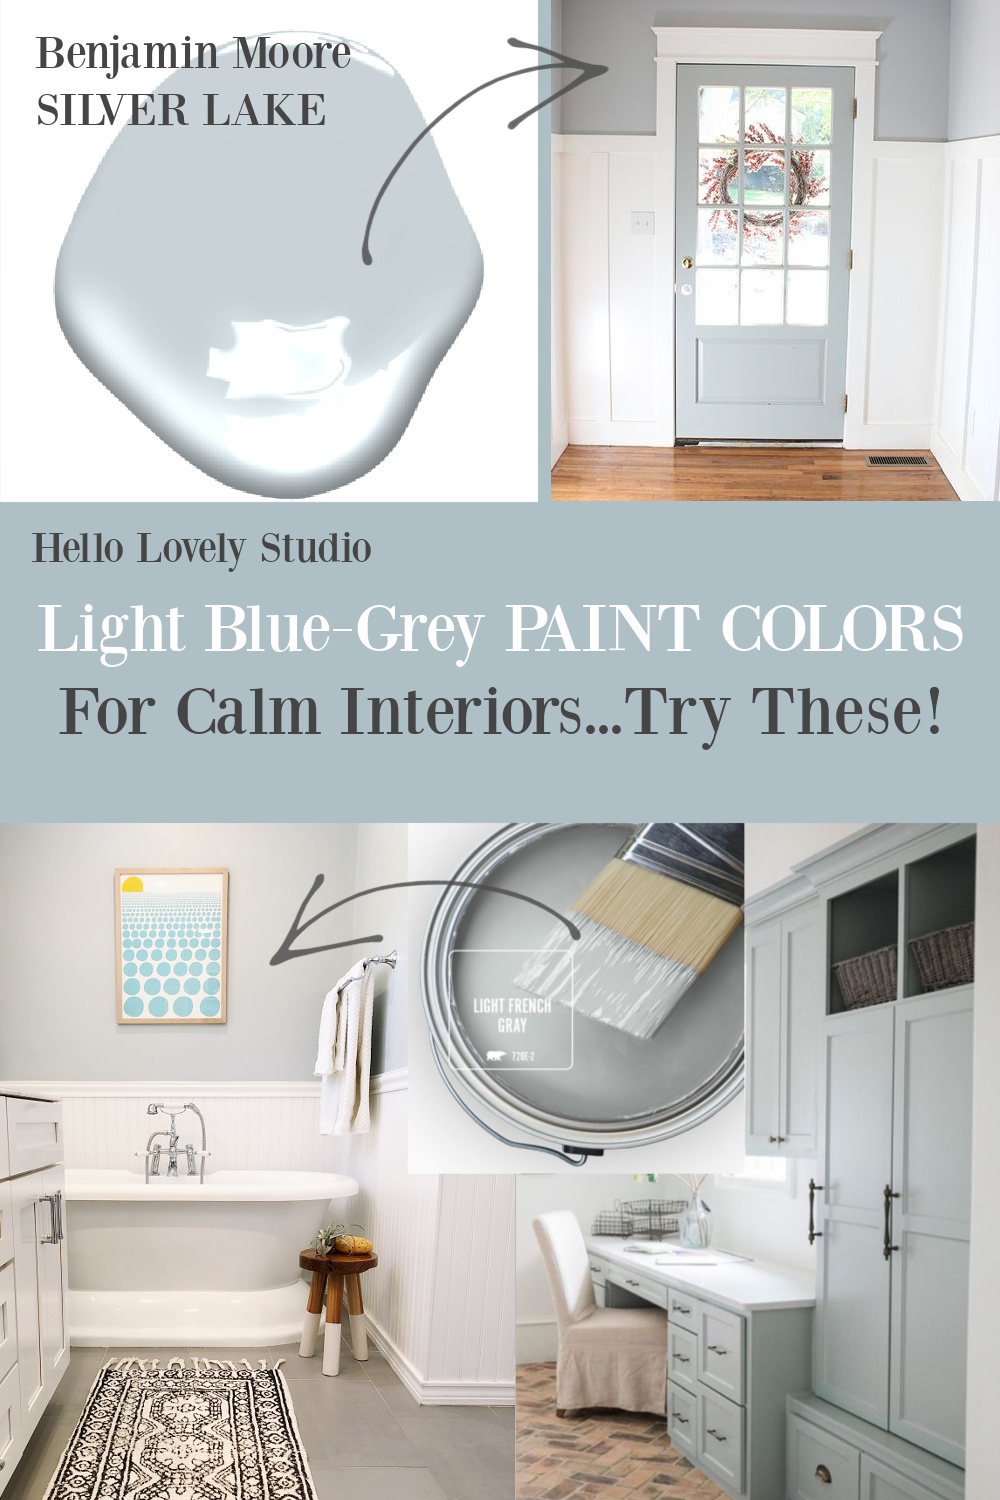 Light grey paint colors for calm interiors - try these on Hello Lovely! #paintcolors #bluegray #greyblue #greypaintcolors